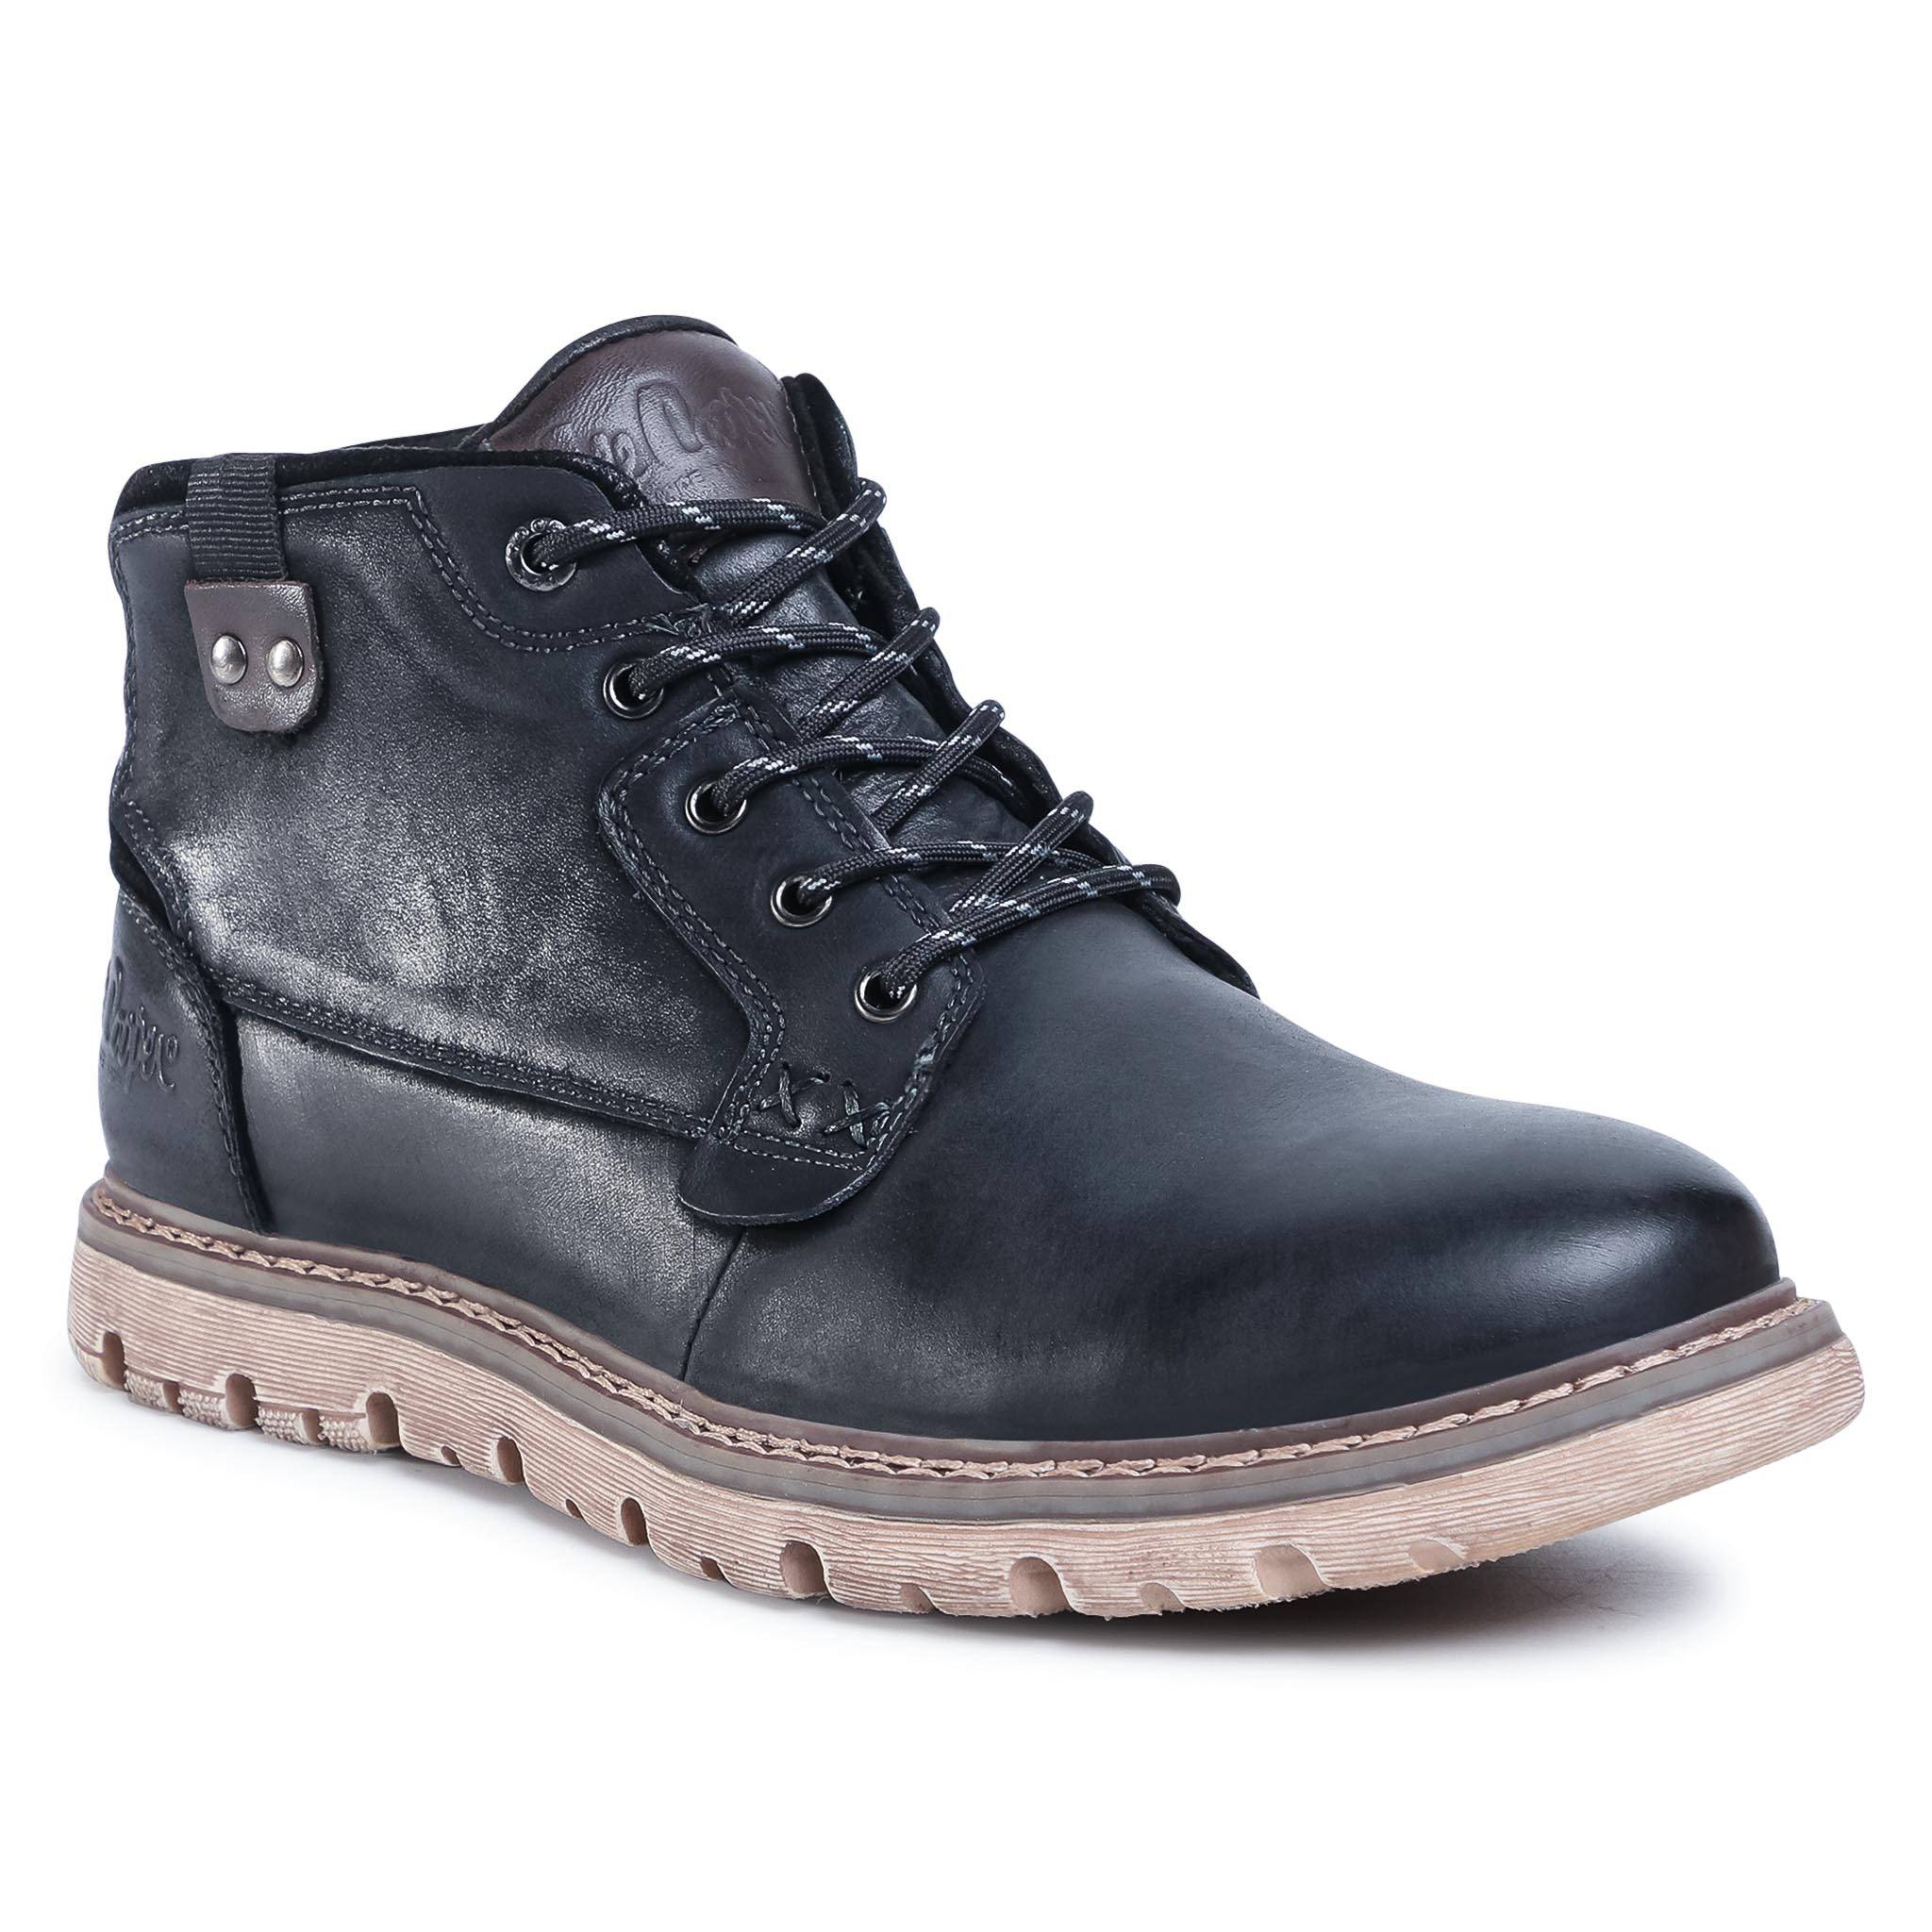 Boots LEE COOPER - LCJ-20-33-111A Black/Dk Brown